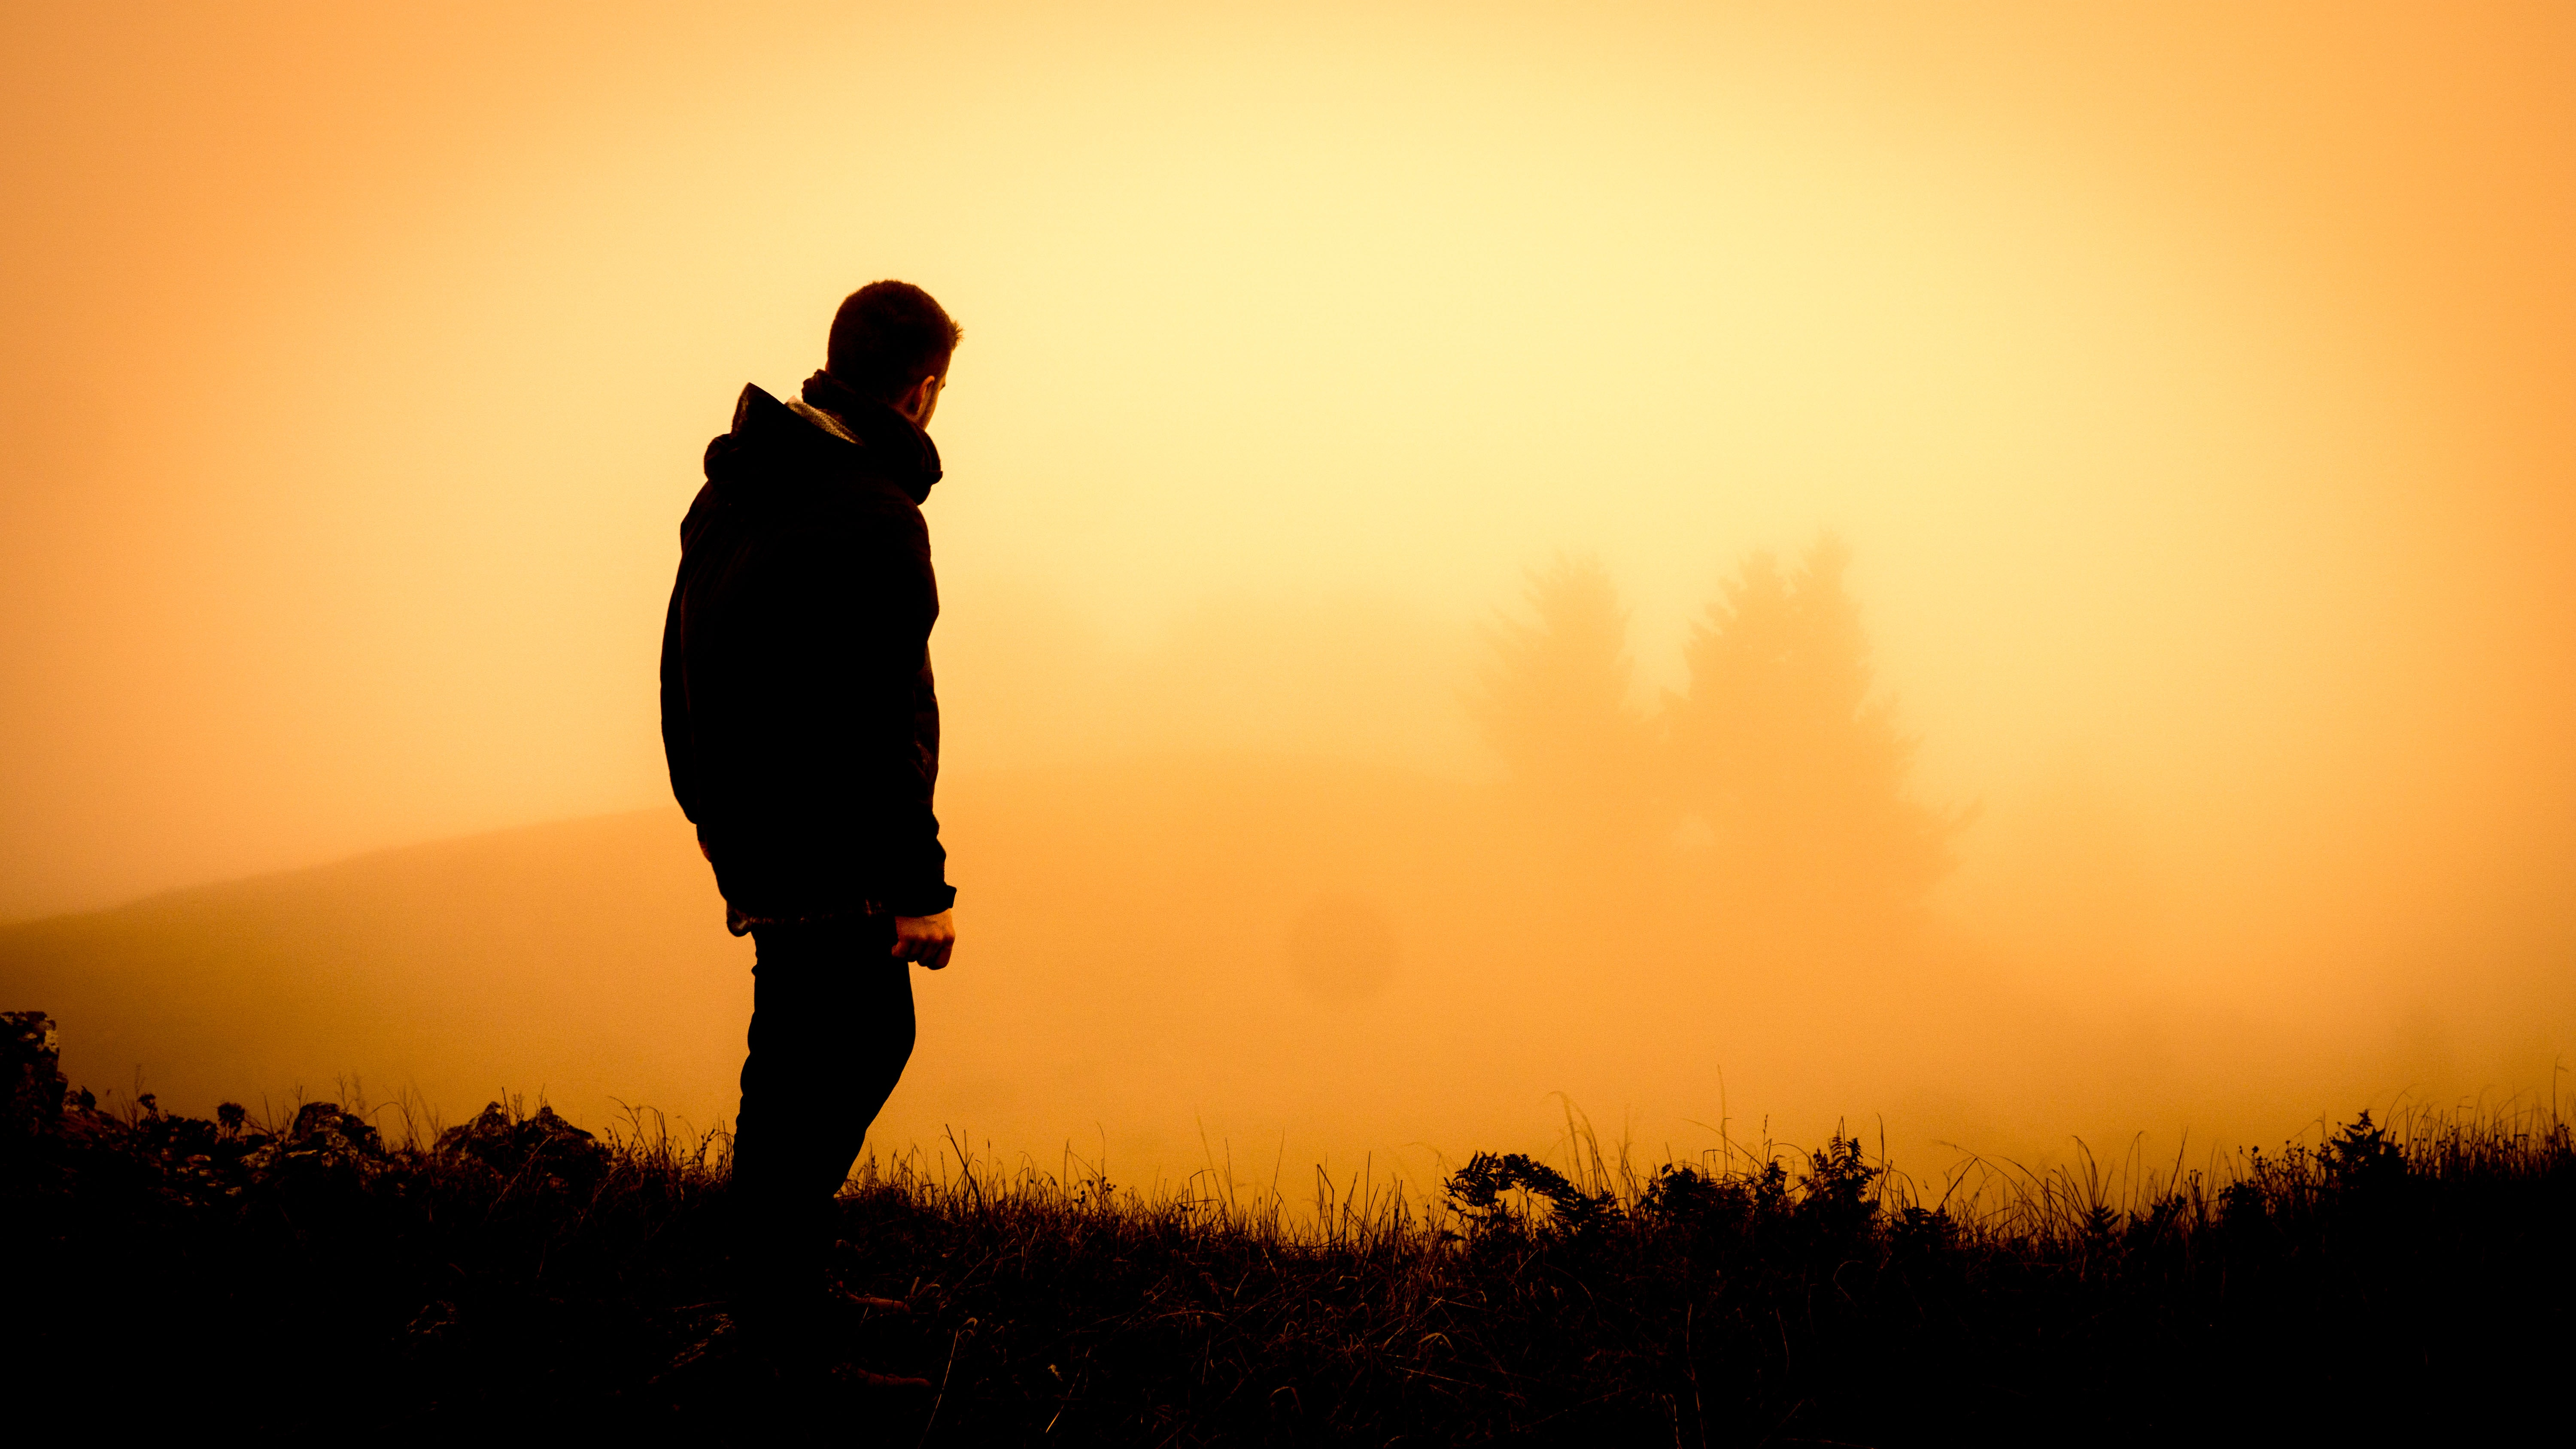 Silhouette of a standing man, against a hazy orange sunset, gazing at distant trees through haze